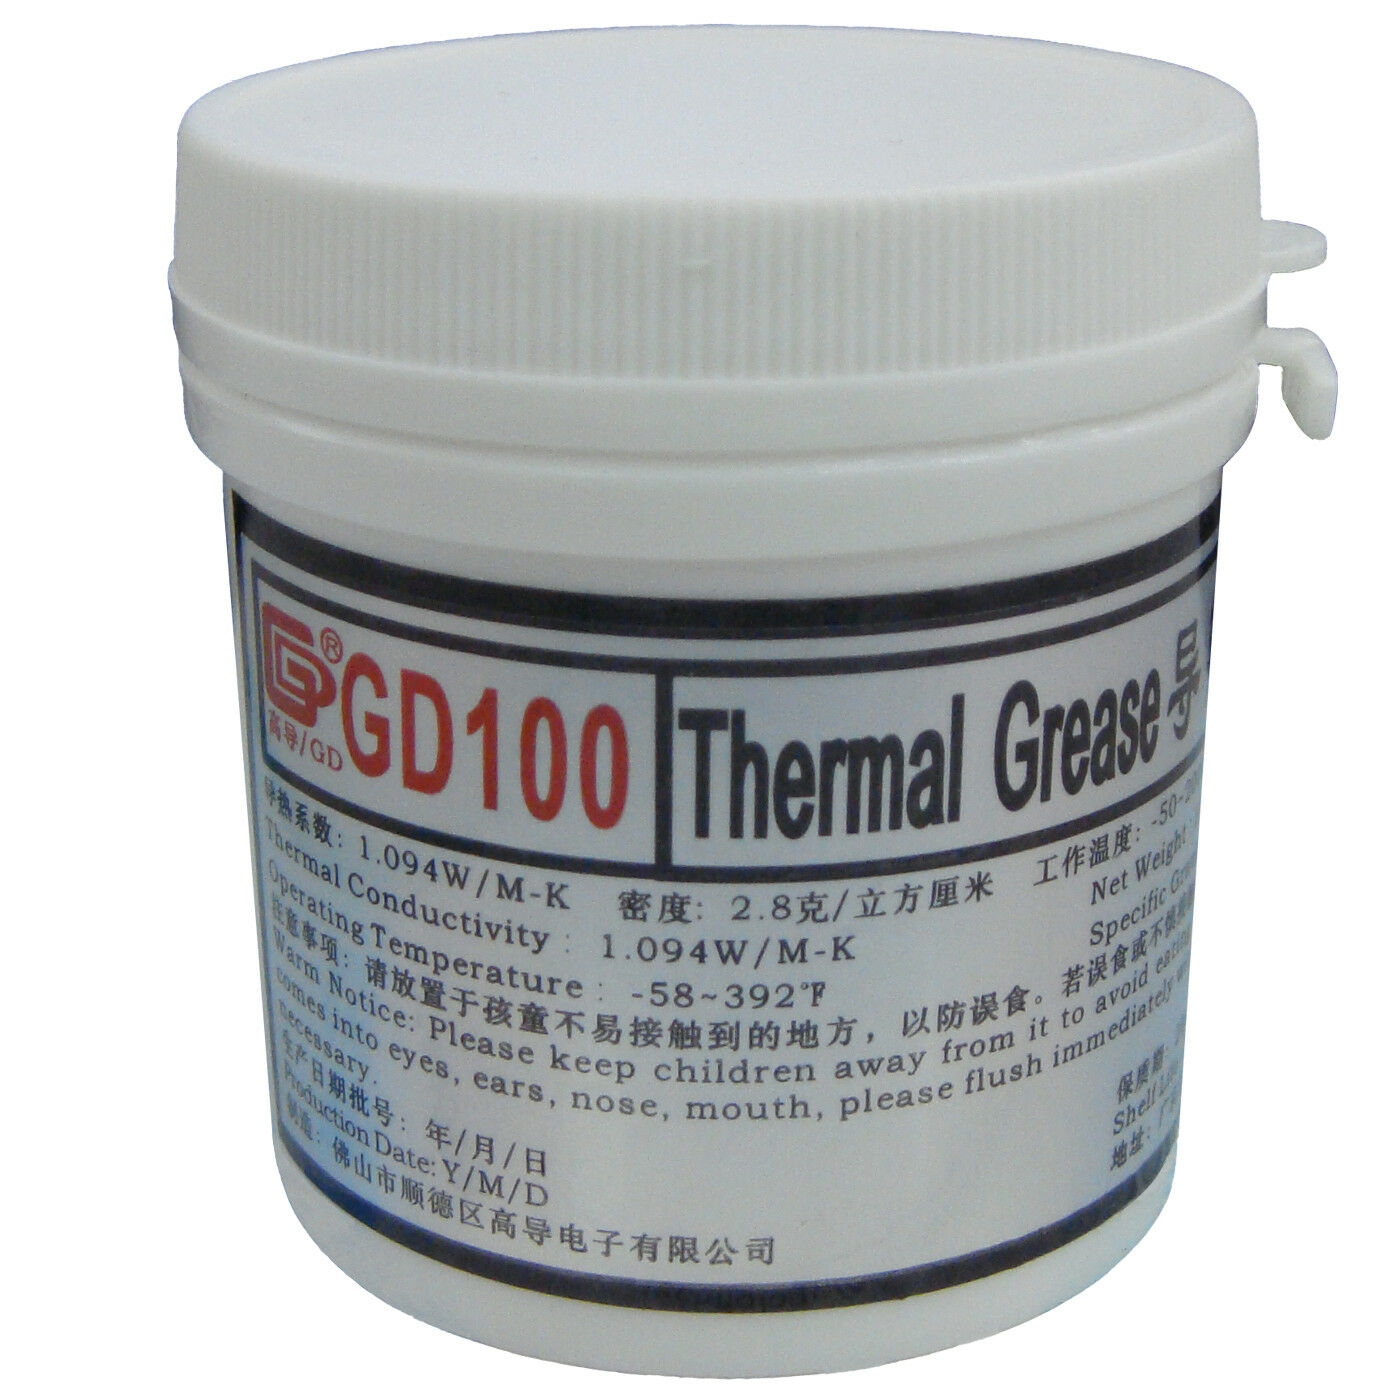 LEDdess Thermal Grease Paste for PC Computer Laptop CPU Cooler GPU Graphics Card 3 Grams, P Series